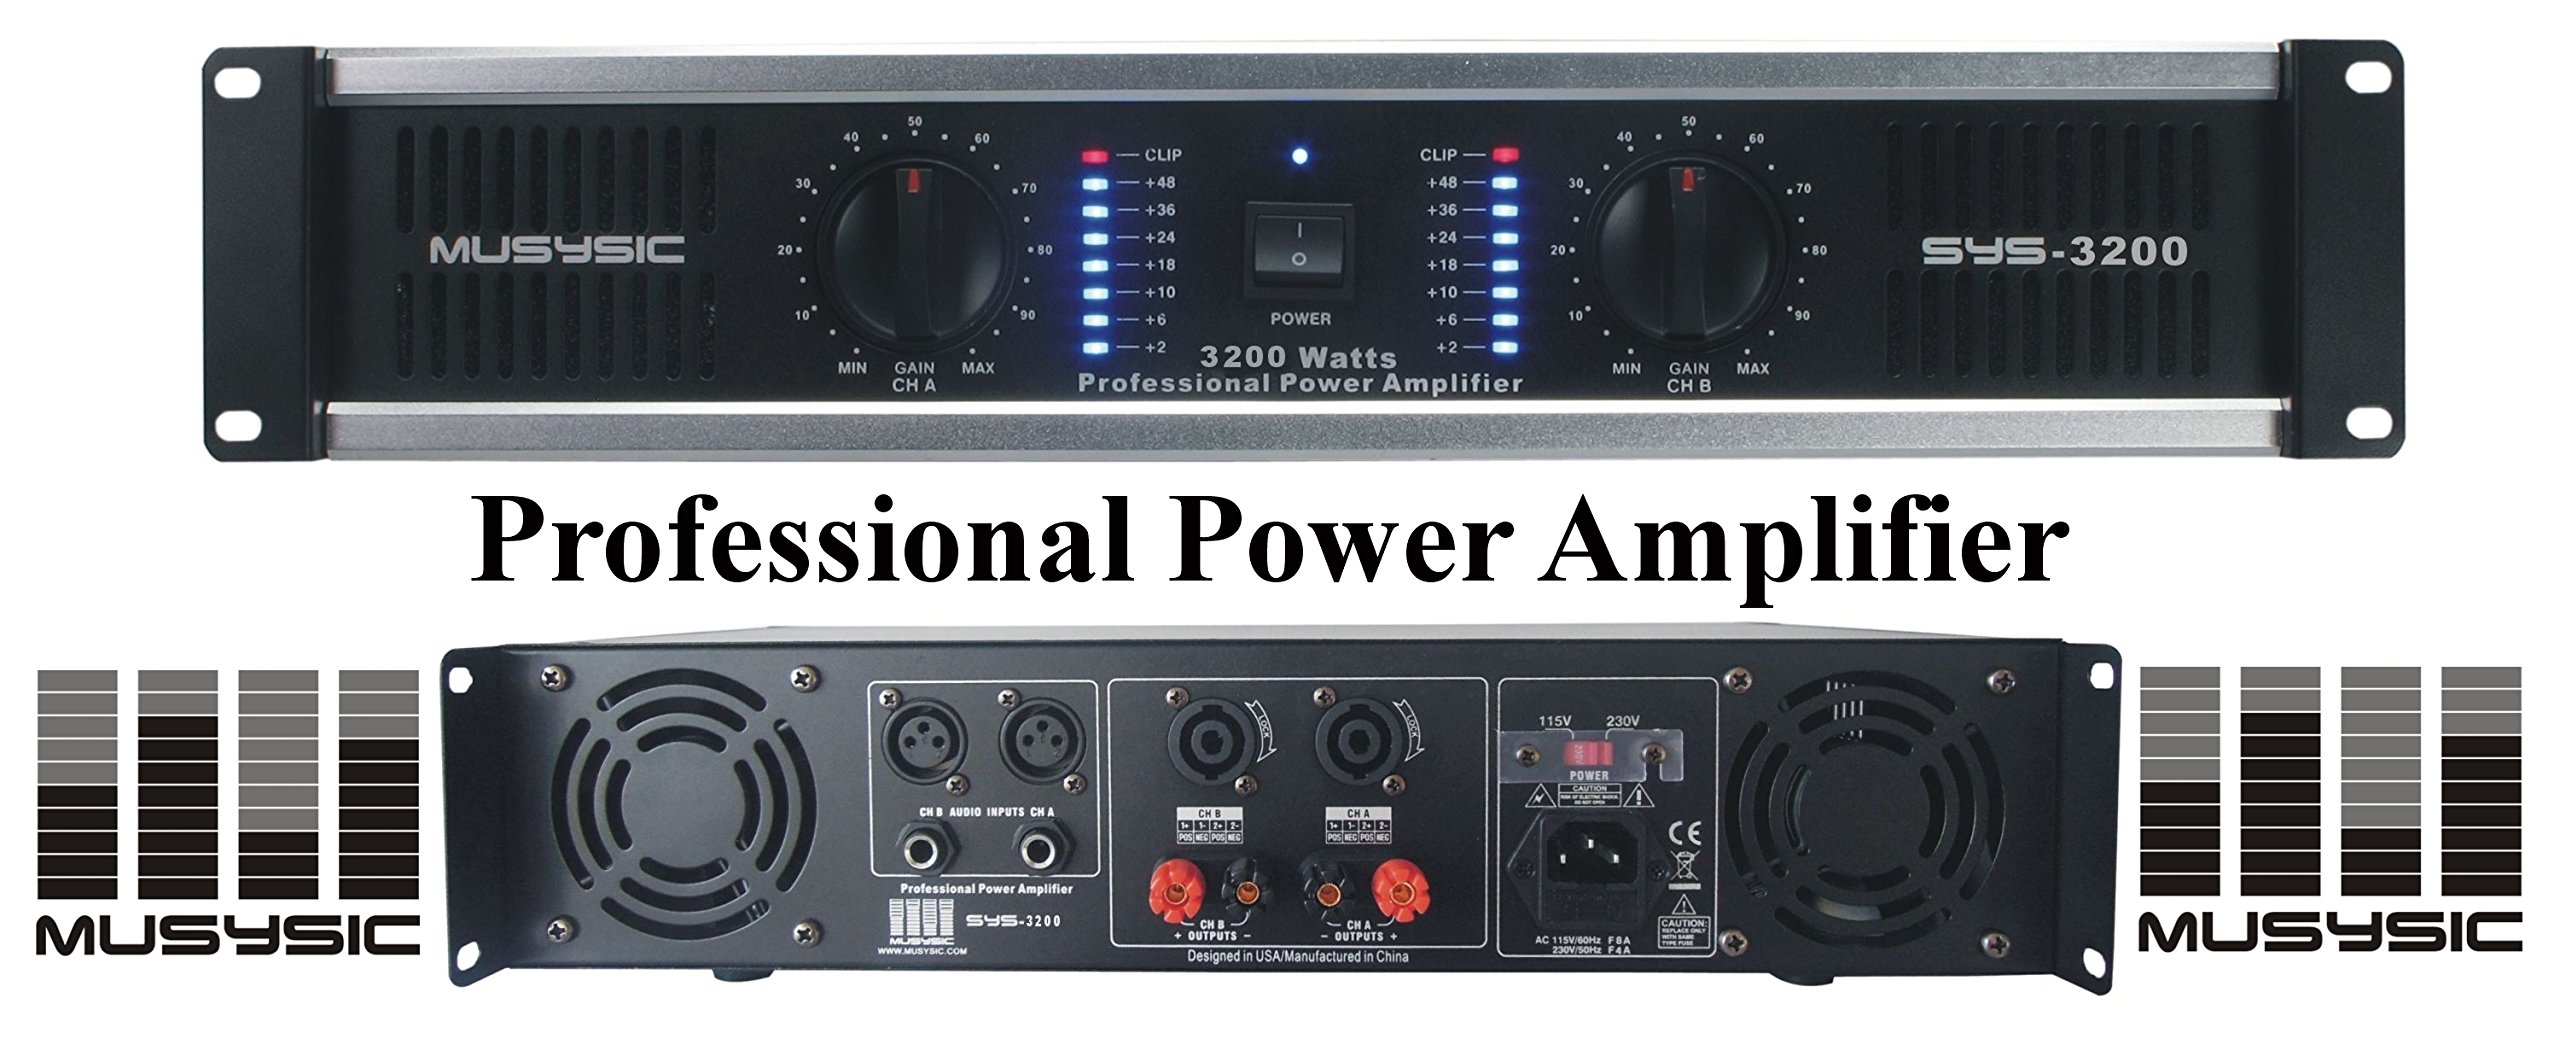 MUSYSIC 2 Channel 3200 Watts DJ PAProfessional Power Amplifier 2U Rack mount SYS-3200 by MUSYSIC